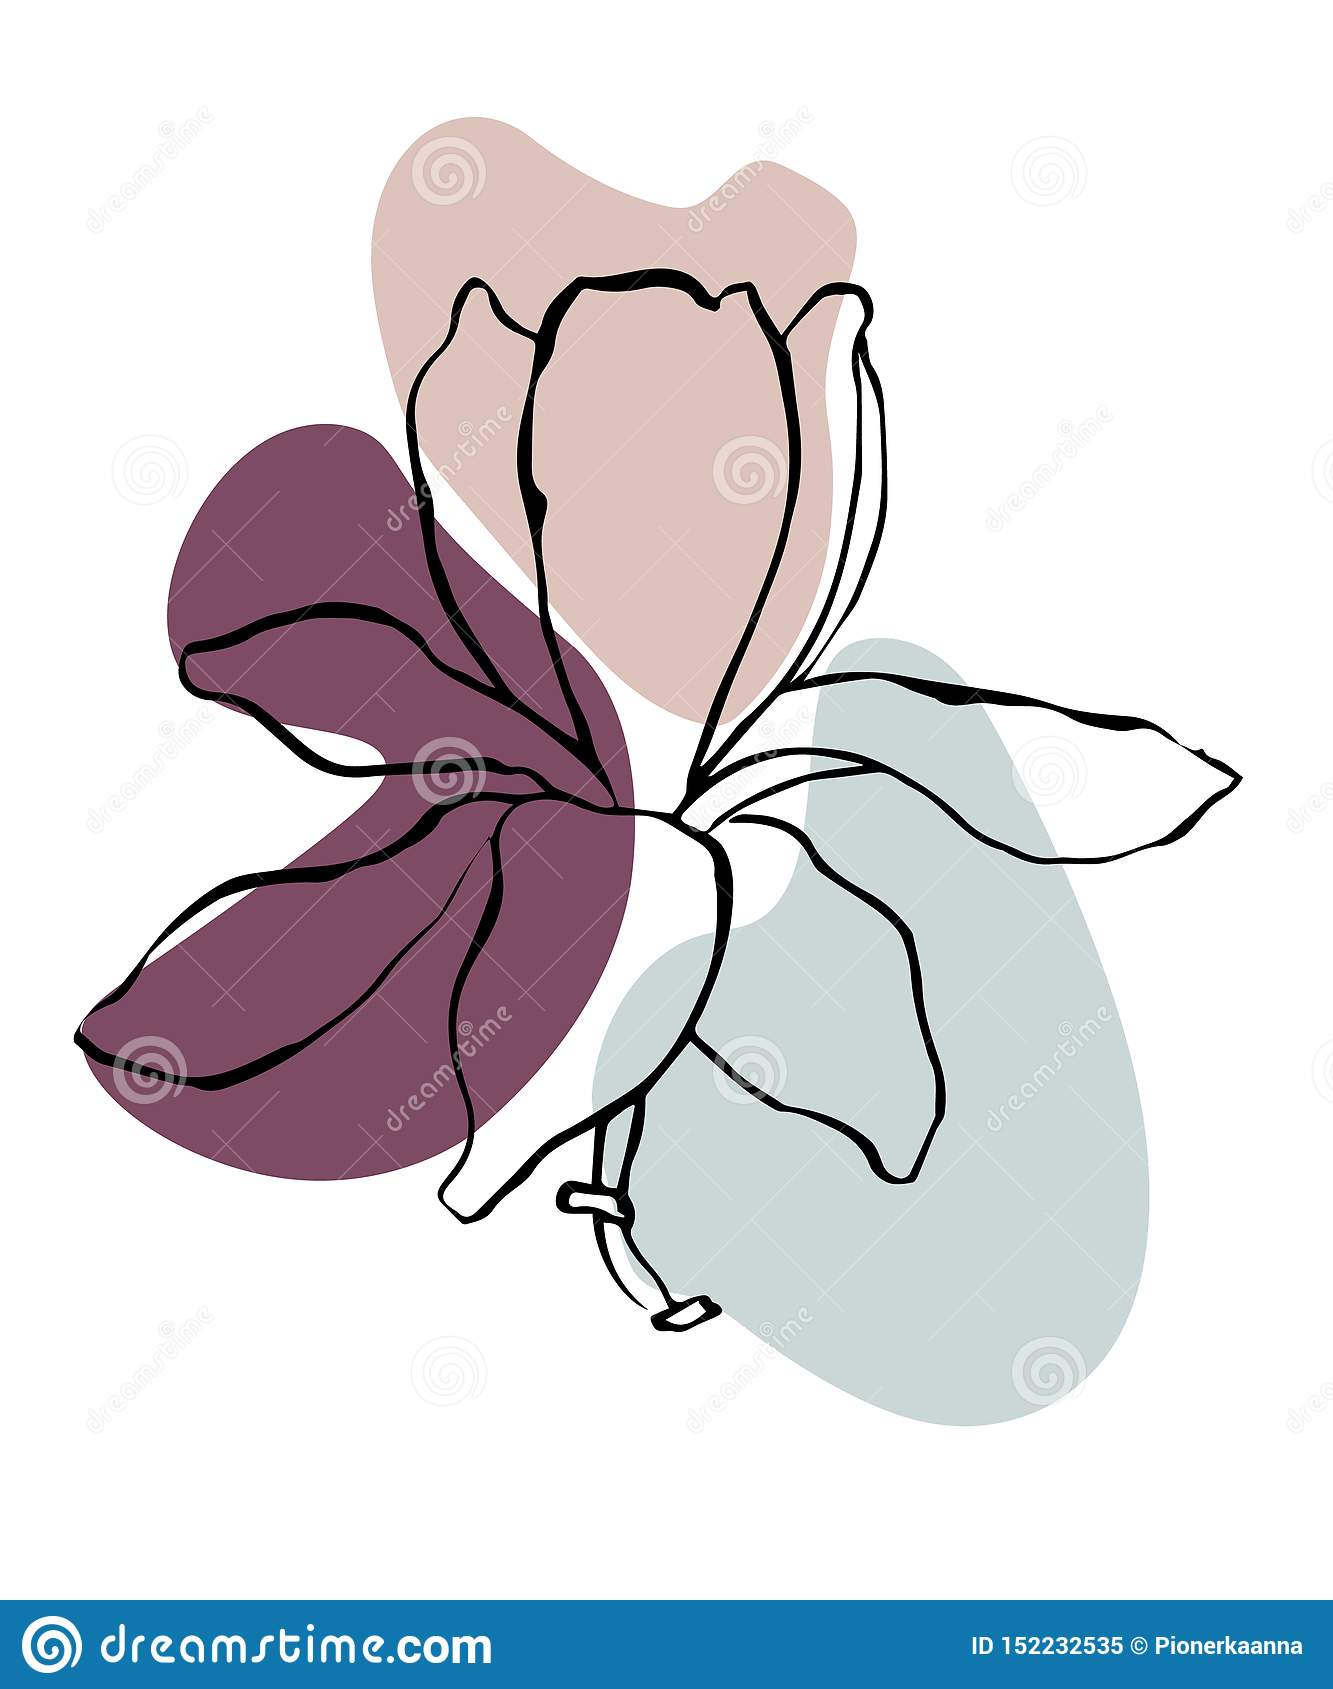 Aesthetic Drawing Stock Illustrations 7 876 Aesthetic Drawing Stock Illustrations Vectors Clipart Dreamstime